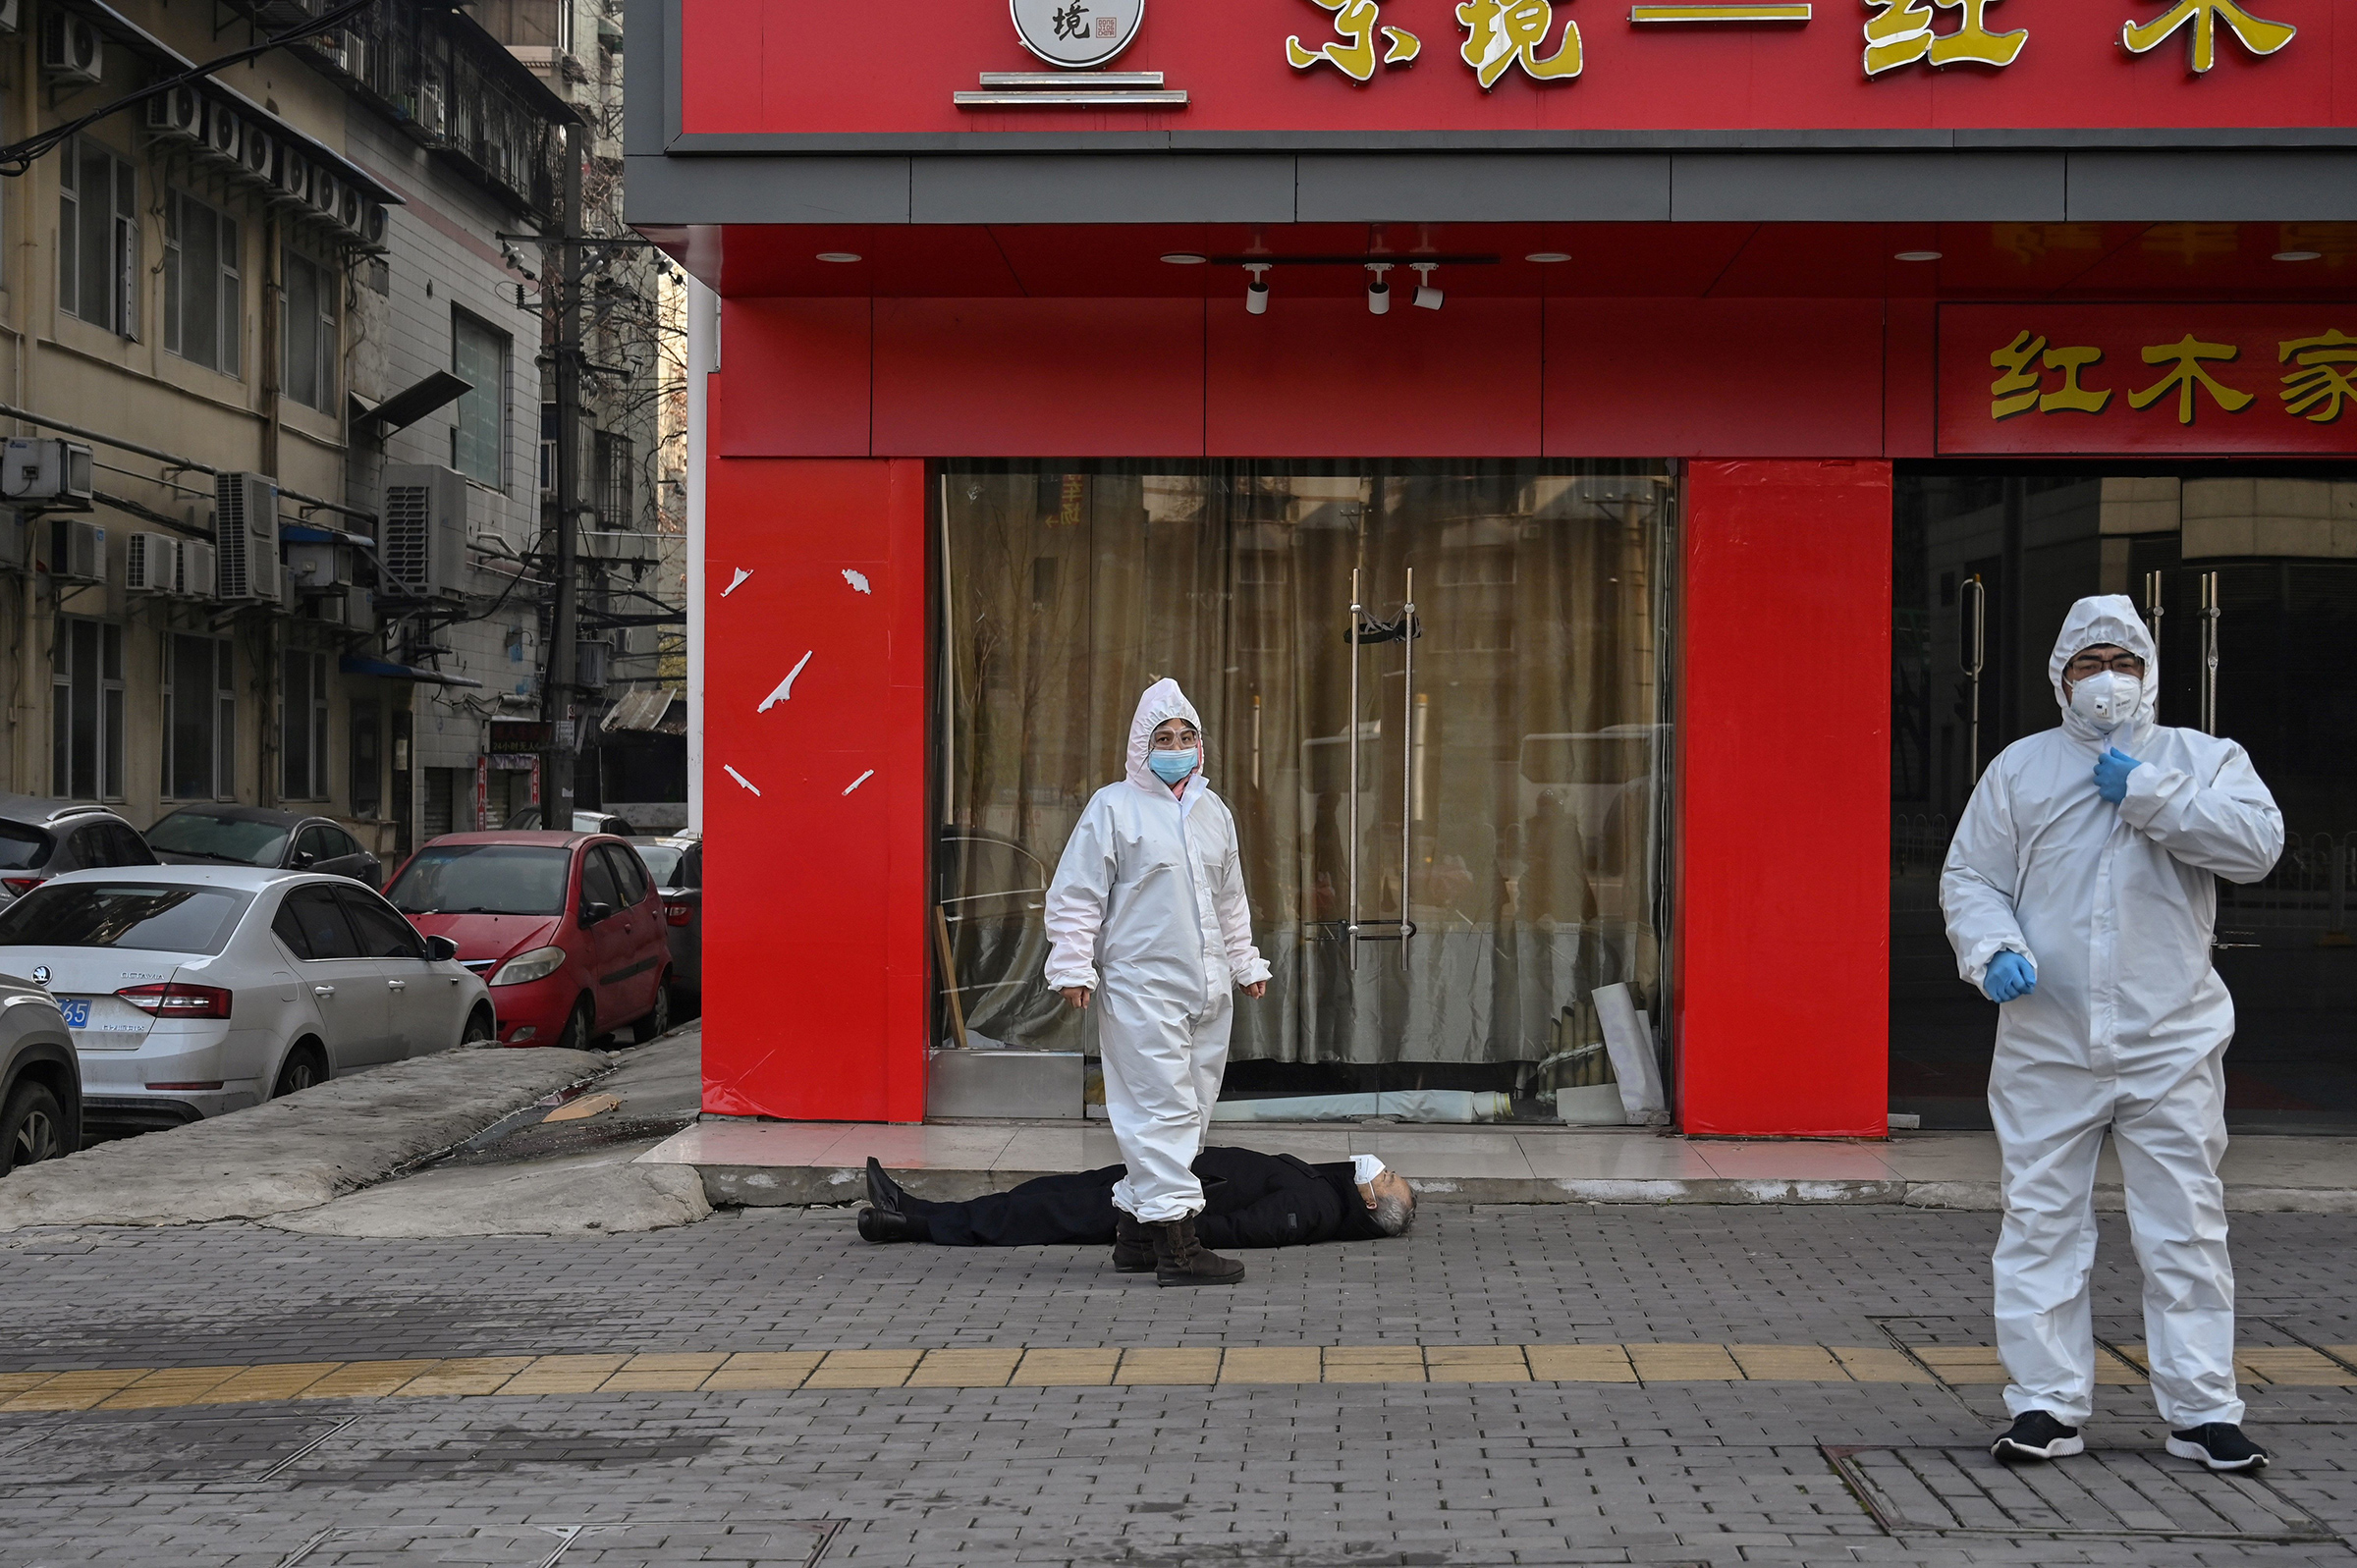 Officials in protective suits near an elderly man who collapsed and died near a hospital in Wuhan, China, on Jan. 30.